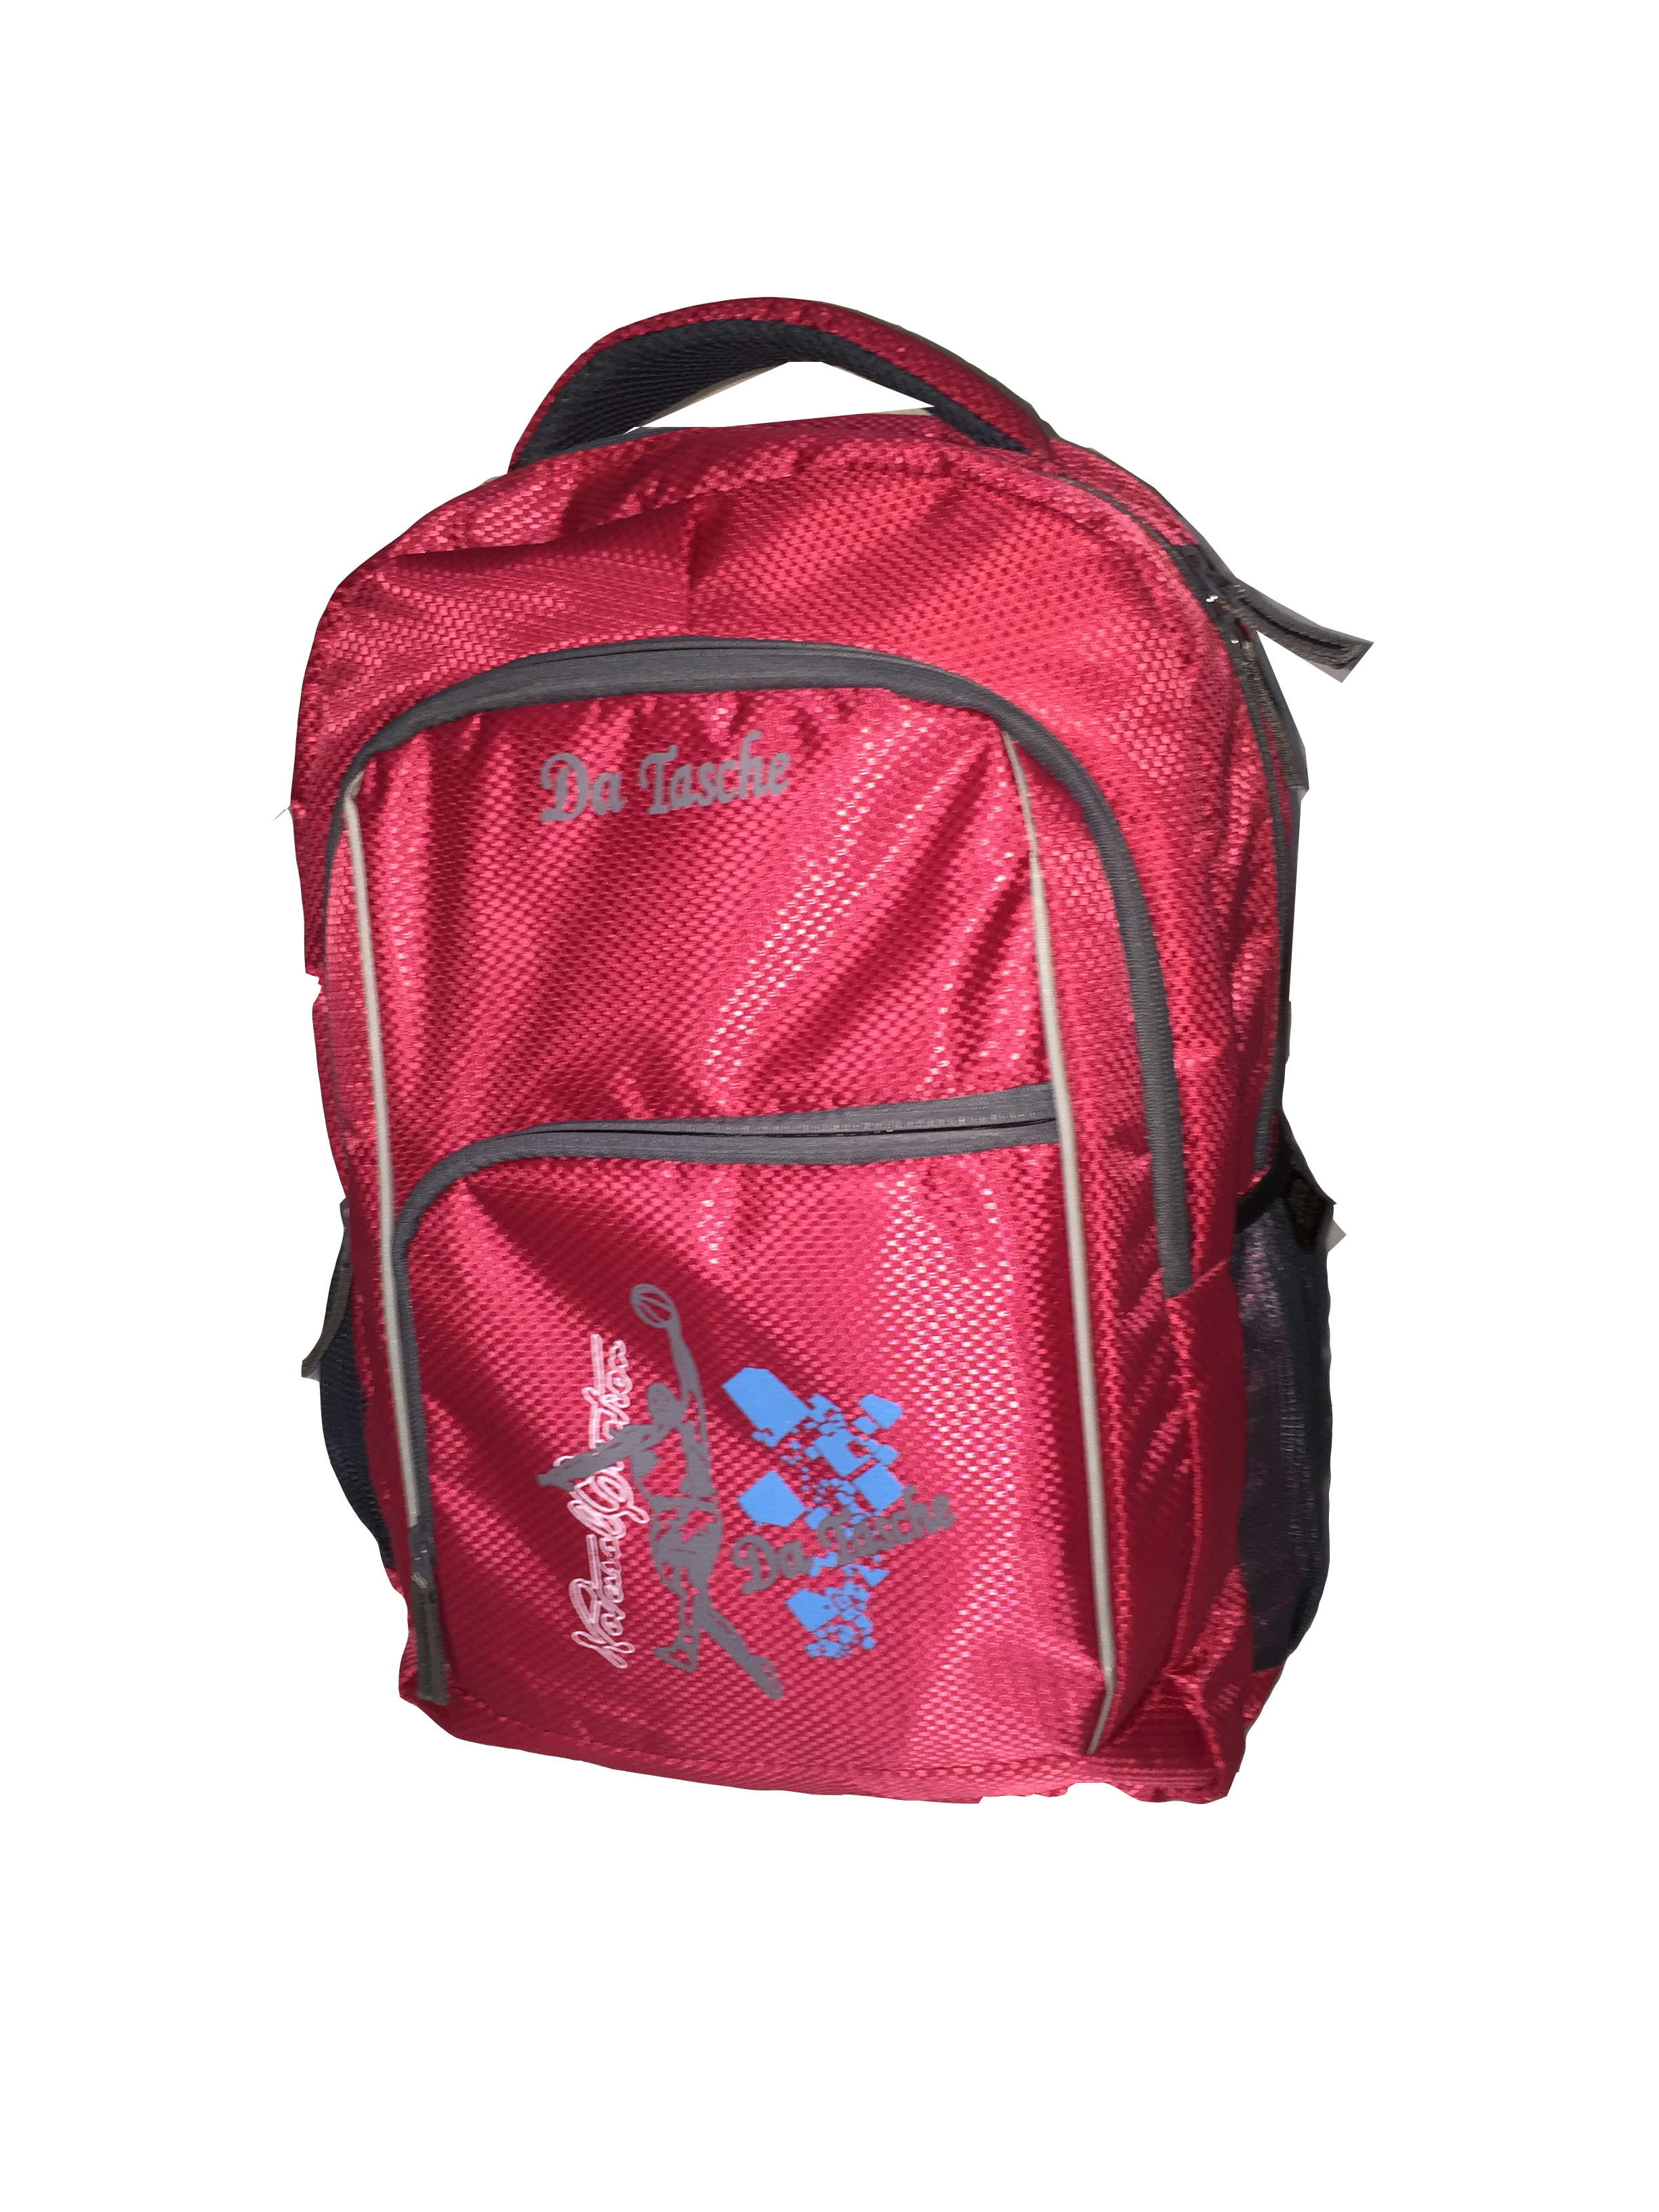 Da Tasche Red Lightweight School Bag/Backpack